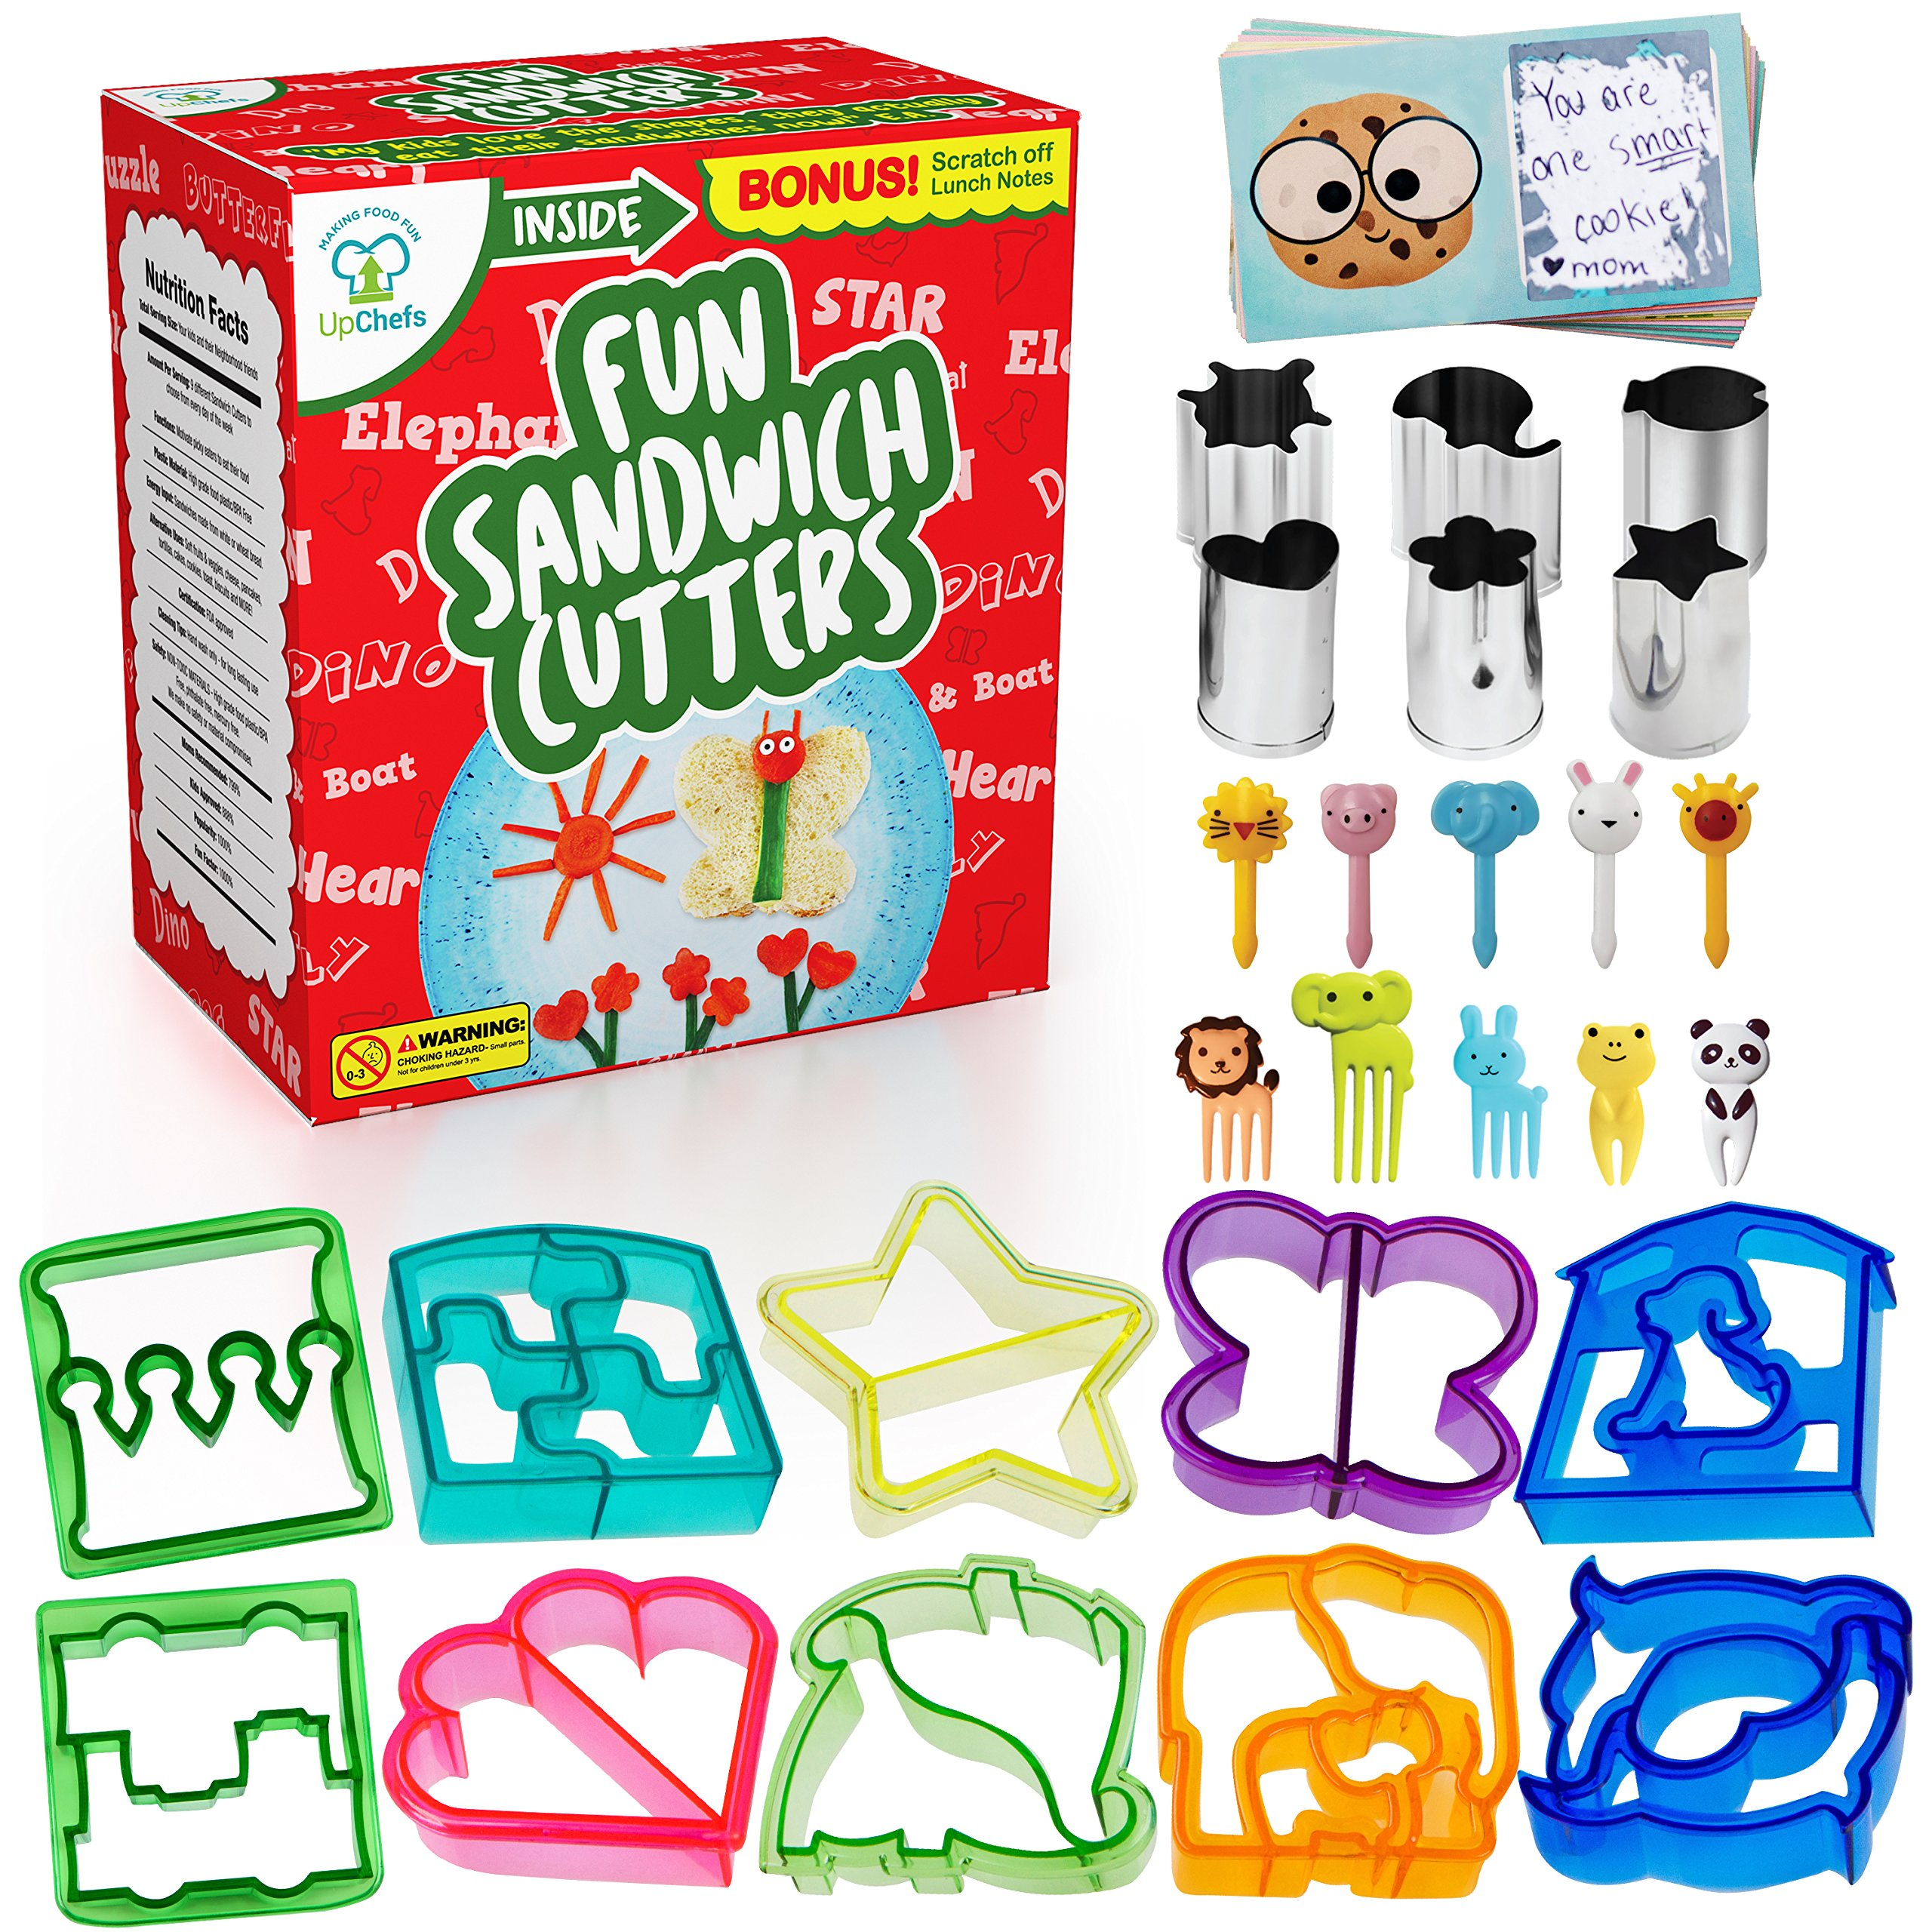 Fun Sandwich and Bread Cutter Shapes for kids - 10 Crust & Cookie Cutters - PLUS 6 FREE Mini Heart & Flower Stainless Steel Vegetable & Fruit Stamp Set and 10 Food Picks Loved by both Boys & Girls! by UpChefs